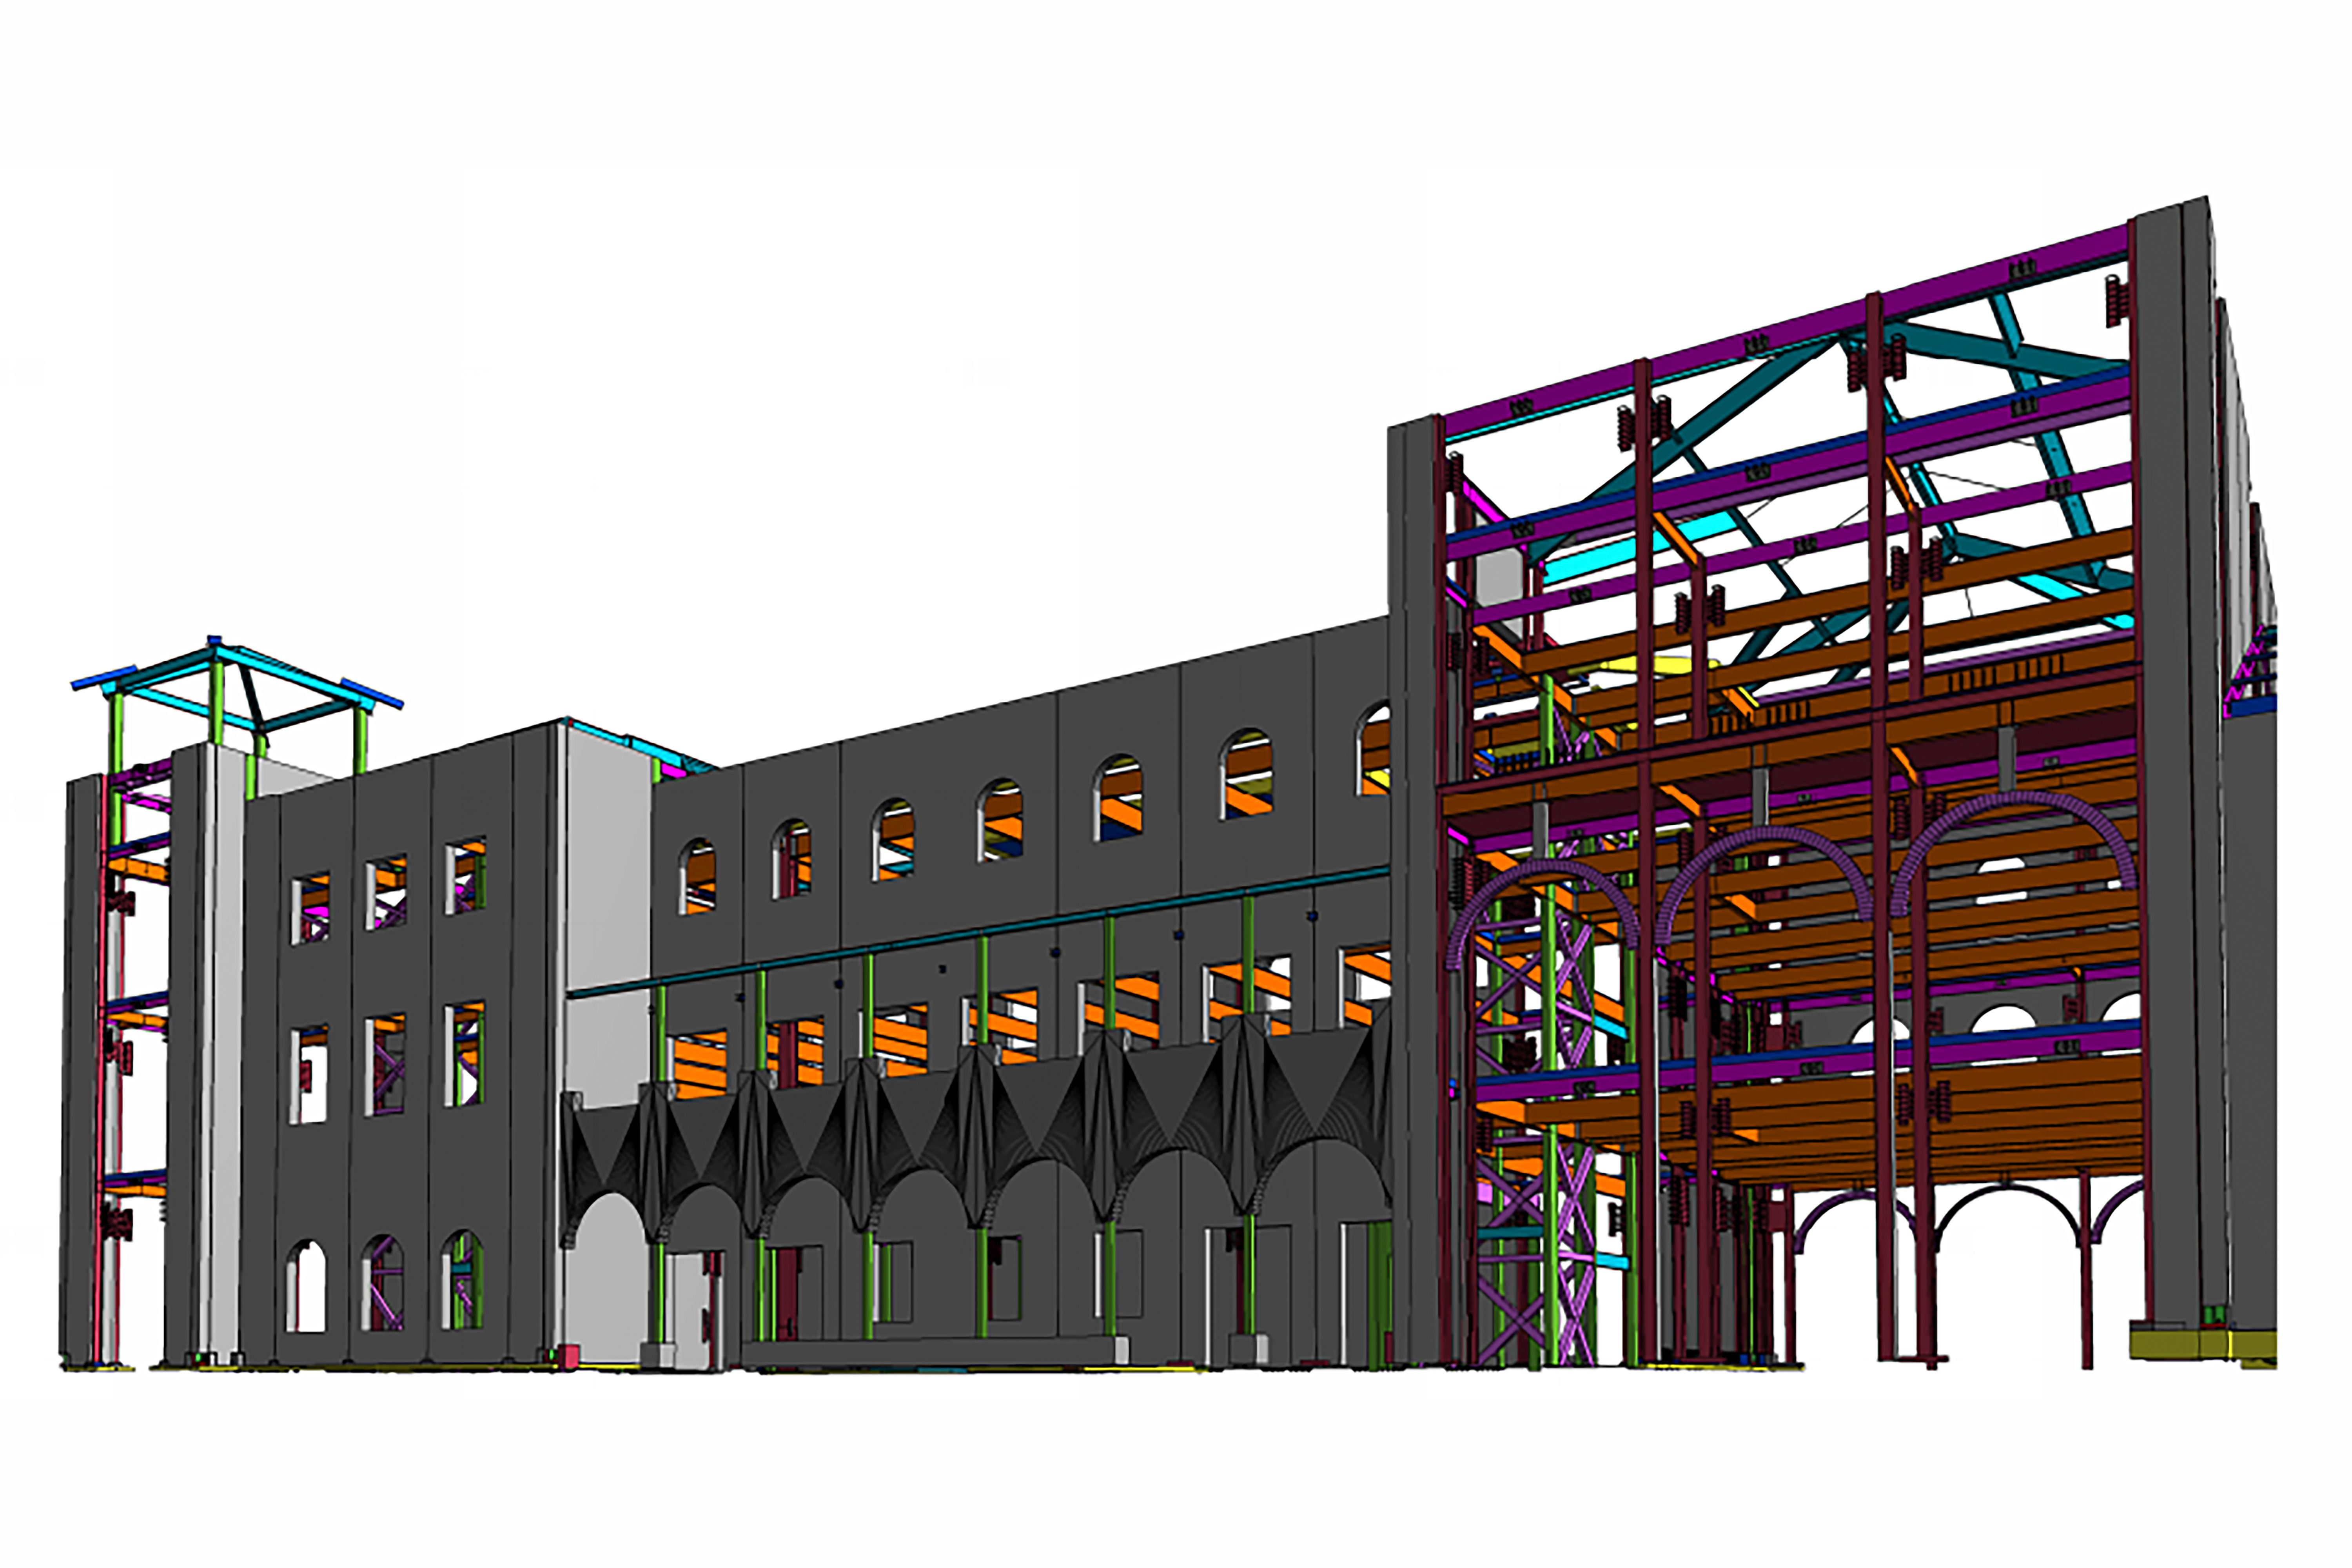 MATT Construction TEKLA USC Cinematic Arts model